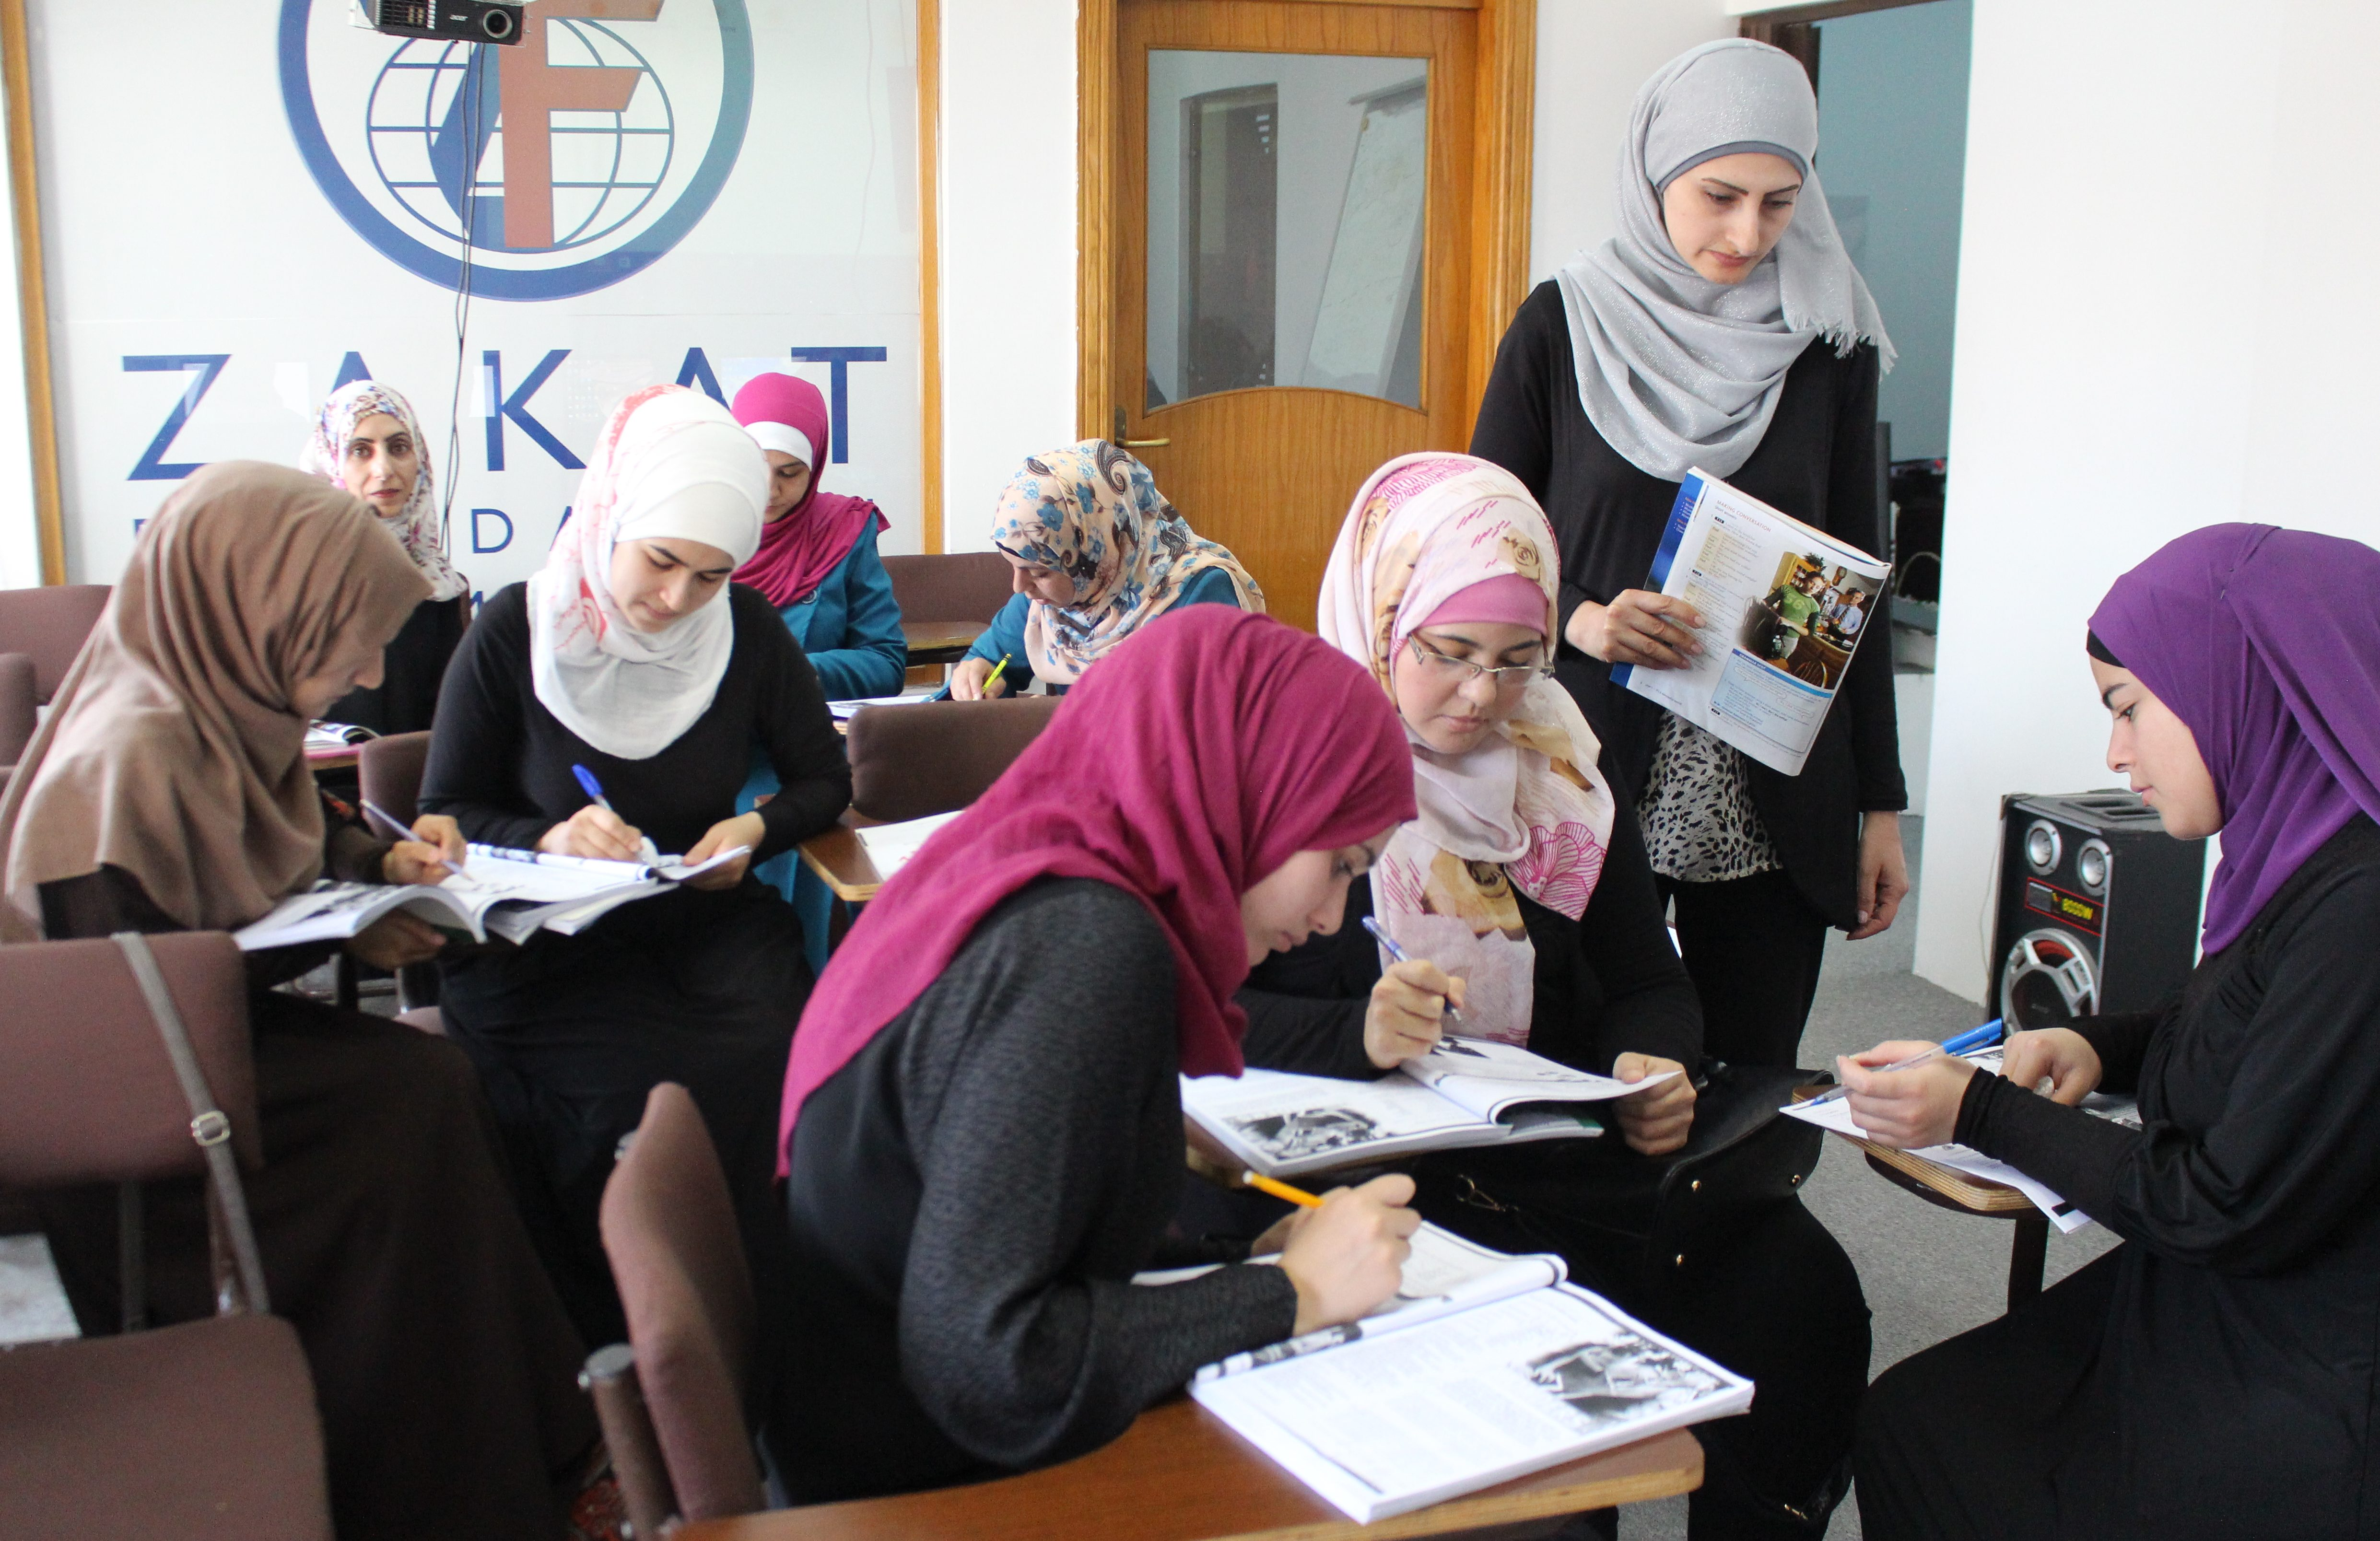 Refugee women from Syria take classes at the Zakat Foundation of America Vocational Training Center